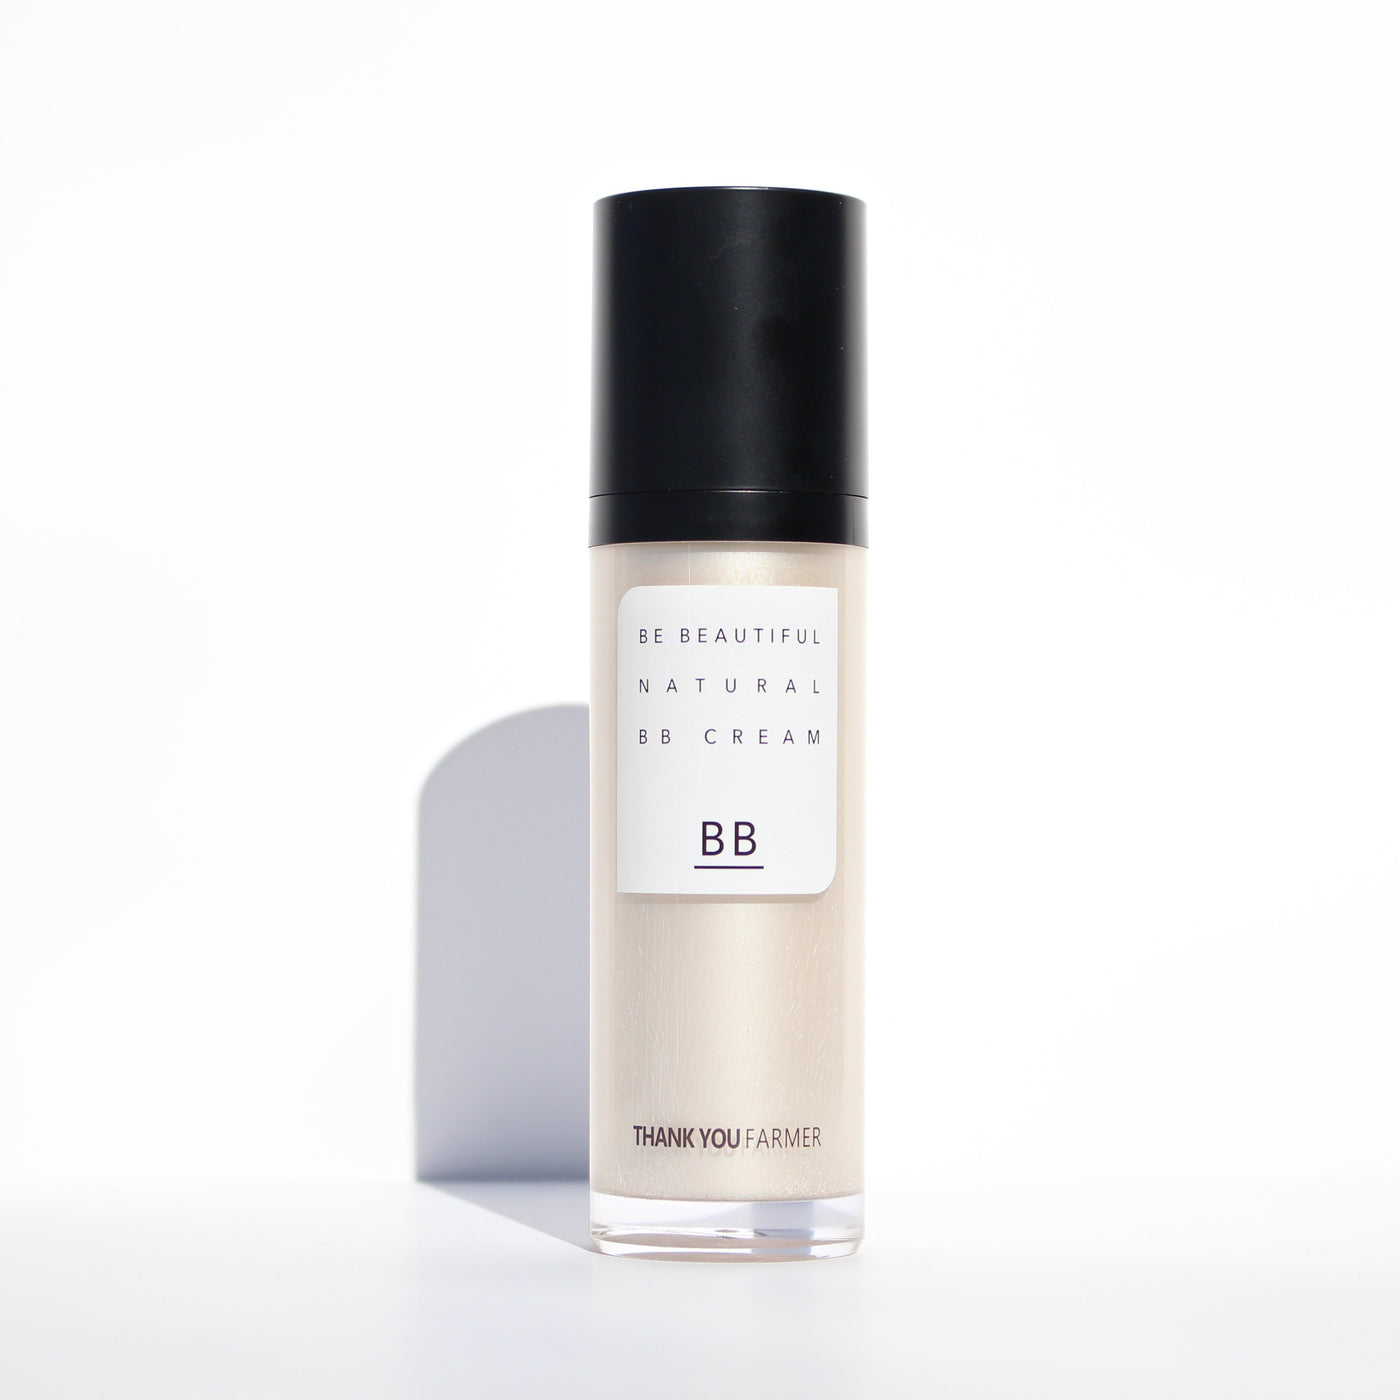 Nature21 Blvd_Thank You Farmer Be Beautiful BB Cream